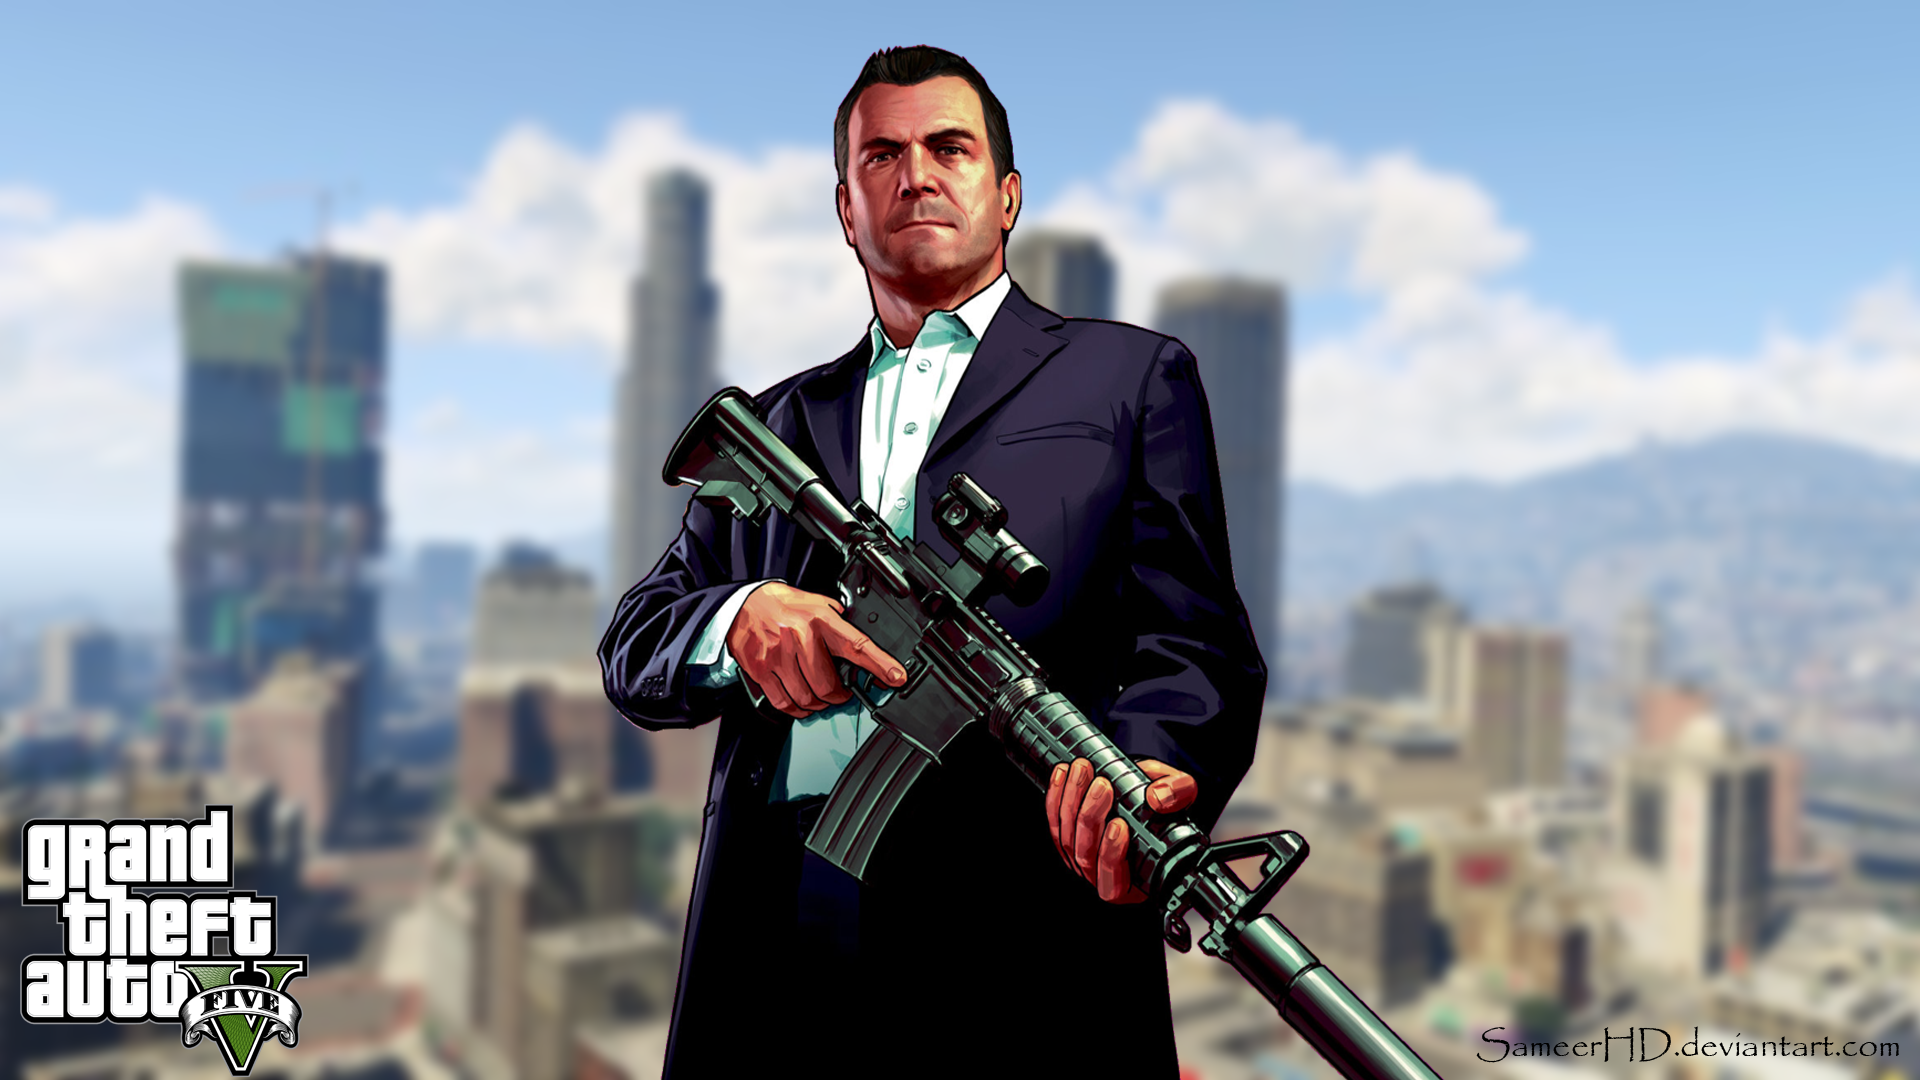 Grand Theft Auto V Michael De Santa Wallpaper by SameerHD ...